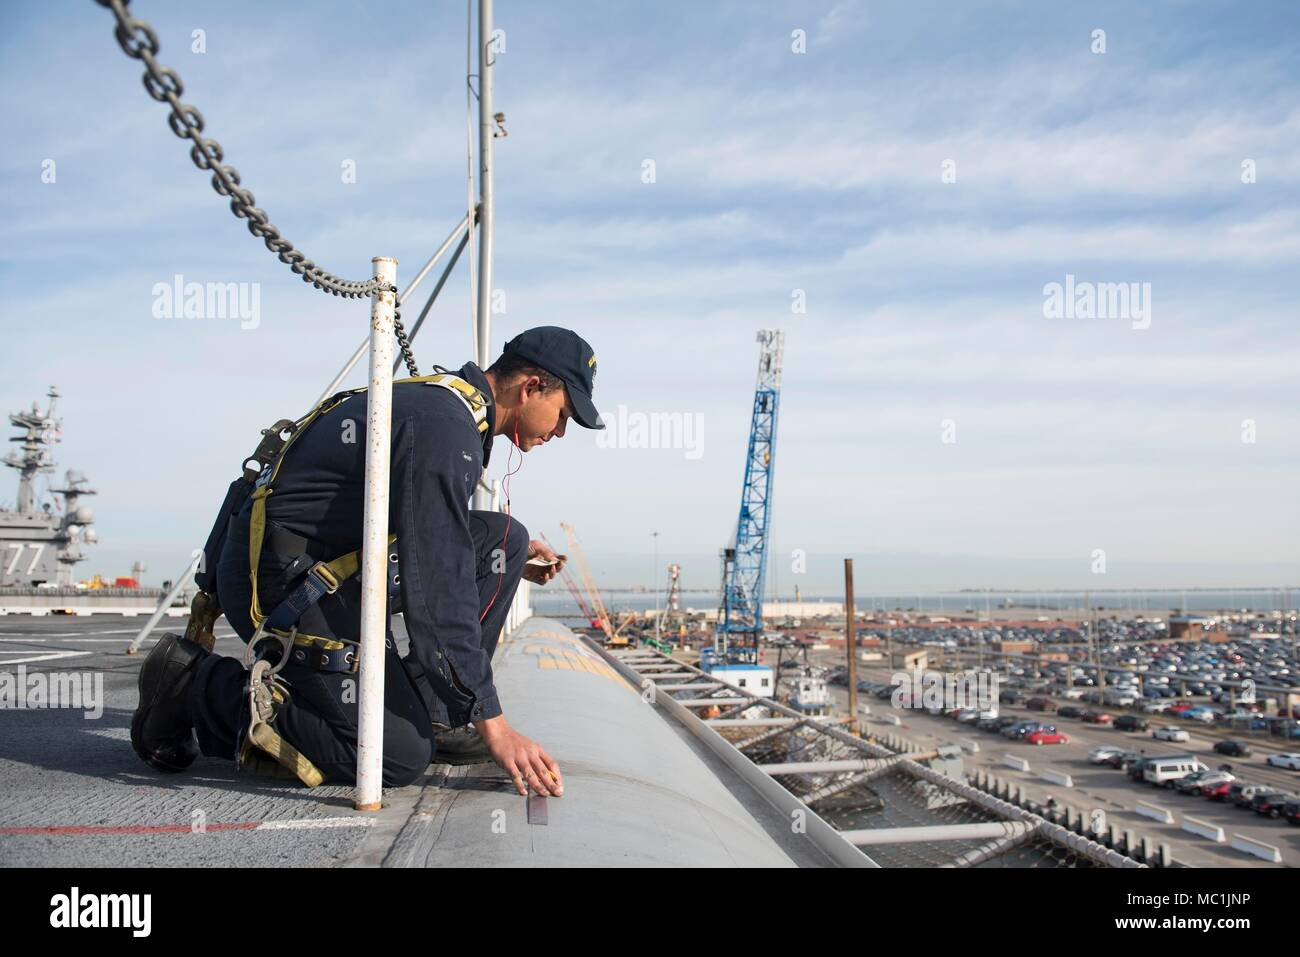 180122-N-NQ487-020 NORFOLK, Va. (Jan. 22, 2018) Airman Edward Mike measures spacing on a future graphic for the bow on the flight deck aboard USS Harry S. Truman (CVN 75). Truman is currently moored at Naval Station Norfolk preparing for the ship's composite training unit exercise (COMPTUEX). (U.S. Navy photo by Mass Communication Specialist 3rd Class Kaysee Lohmann/Released) Stock Photo